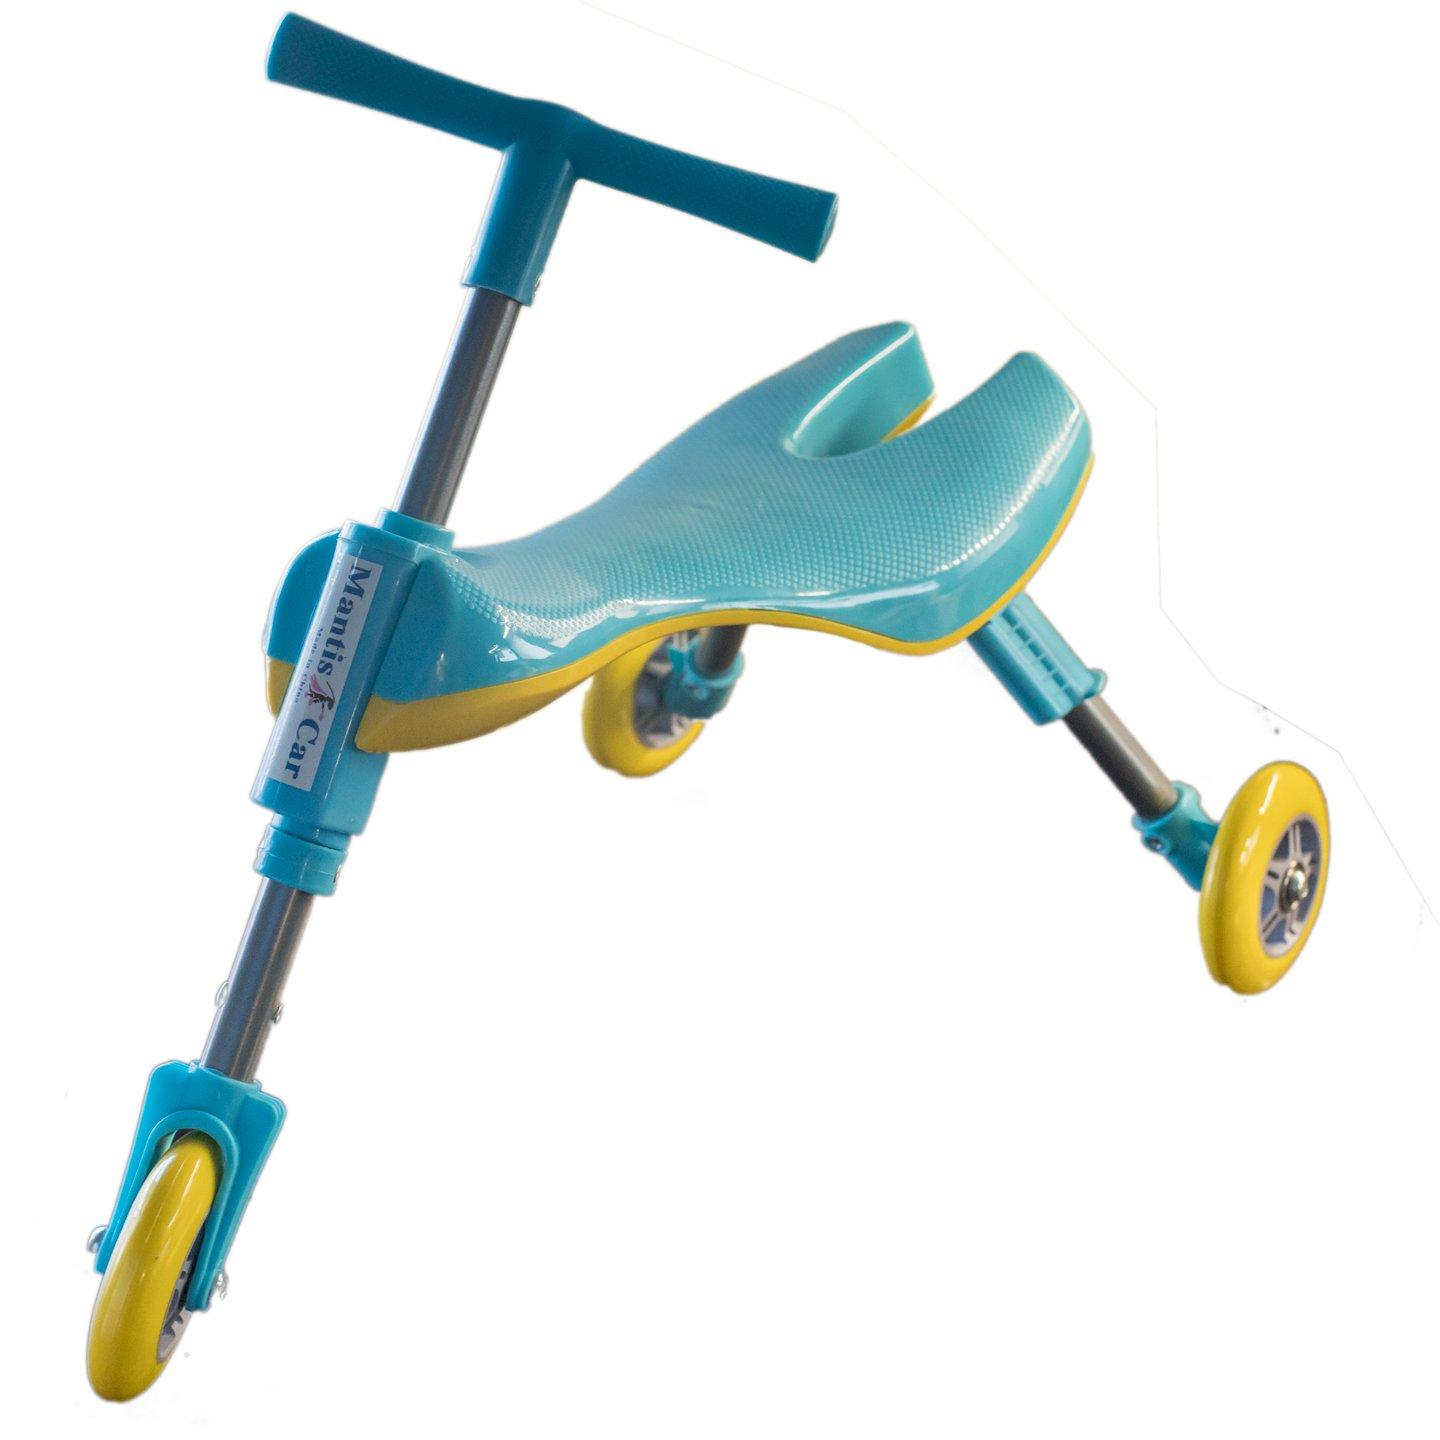 Mr Bigz Foldable Indoor/Outdoor Toddlers Glide Tricycle - No Assembly Required (Blue)